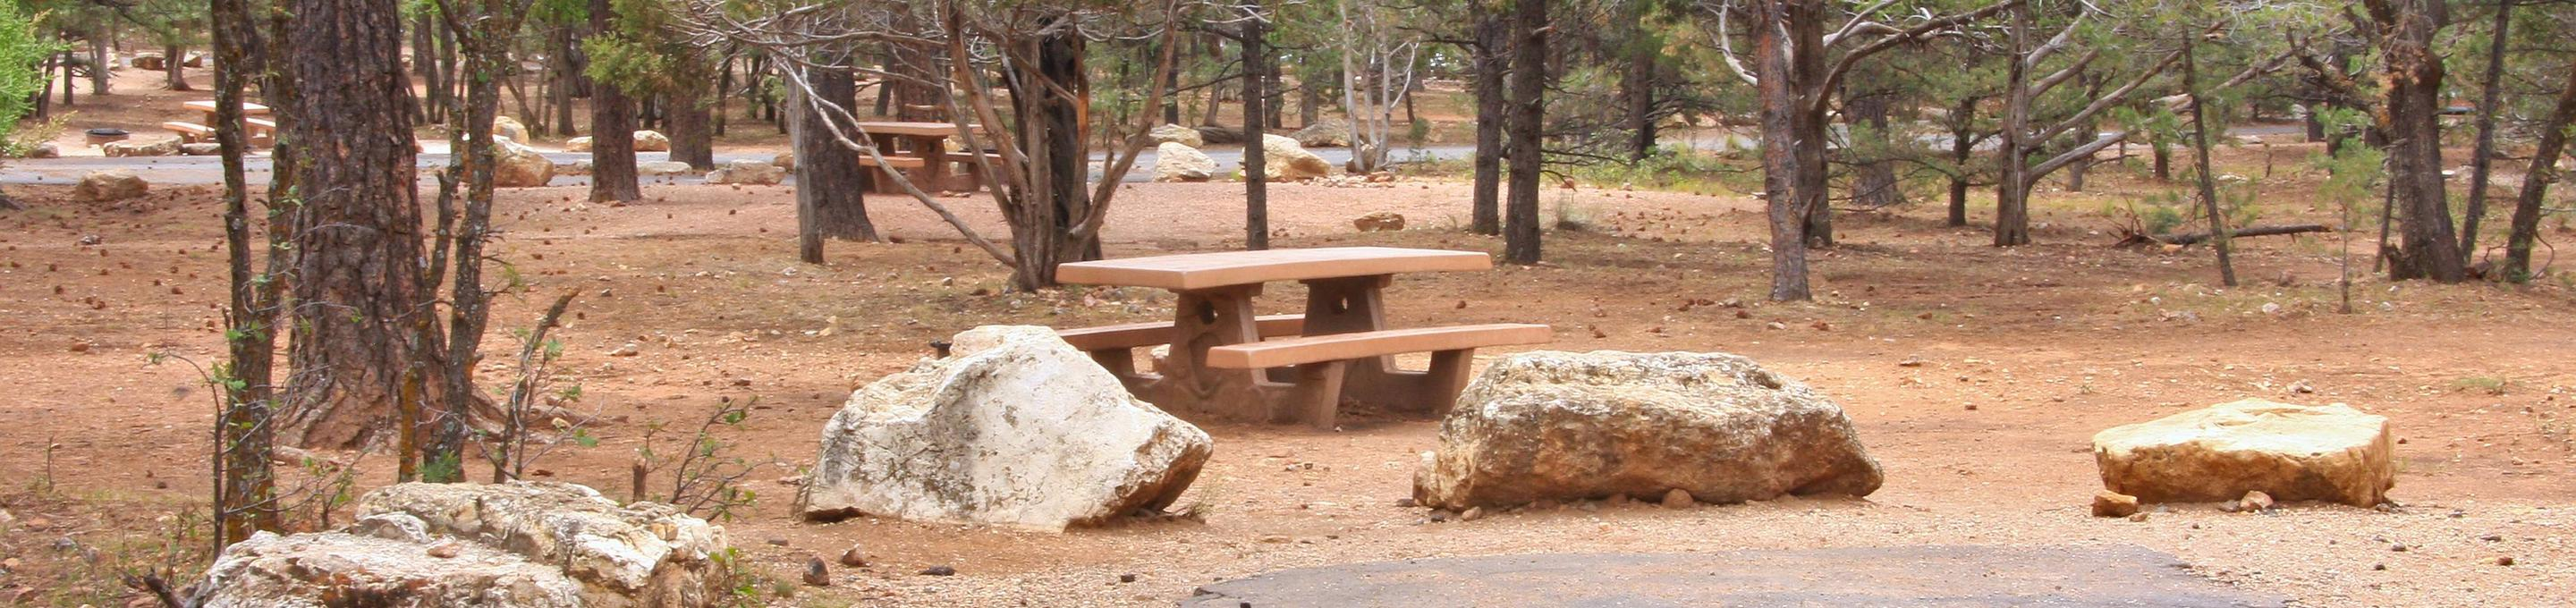 Picnic table and parking spot, Mather CampgroundPicnic table and parking spot for Pine Loop 284, Mather Campground